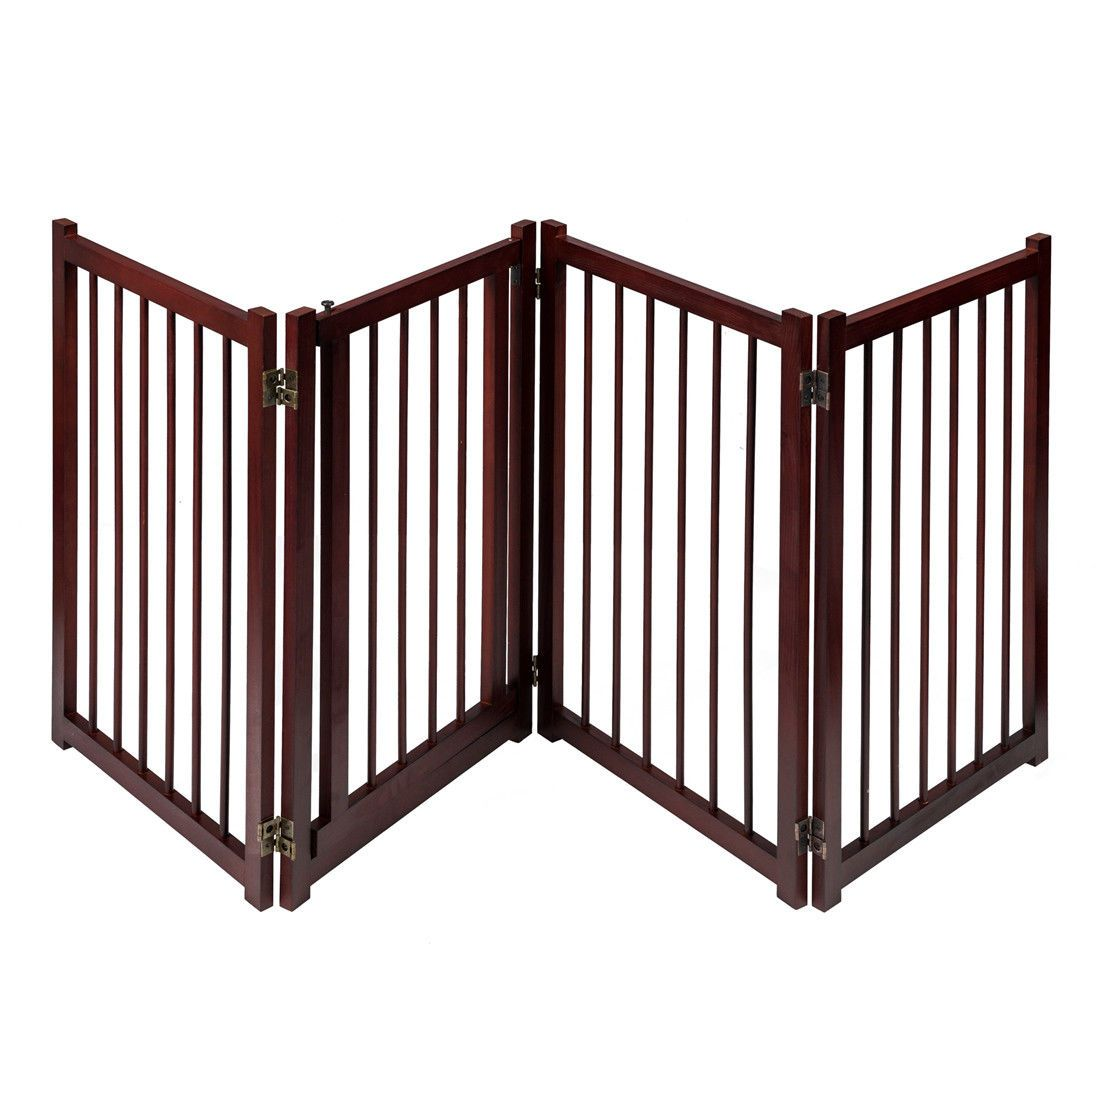 "81"" Wooden Pet Dog Gate with Door Adjustable Freestanding Fence Folding 4 Panel"